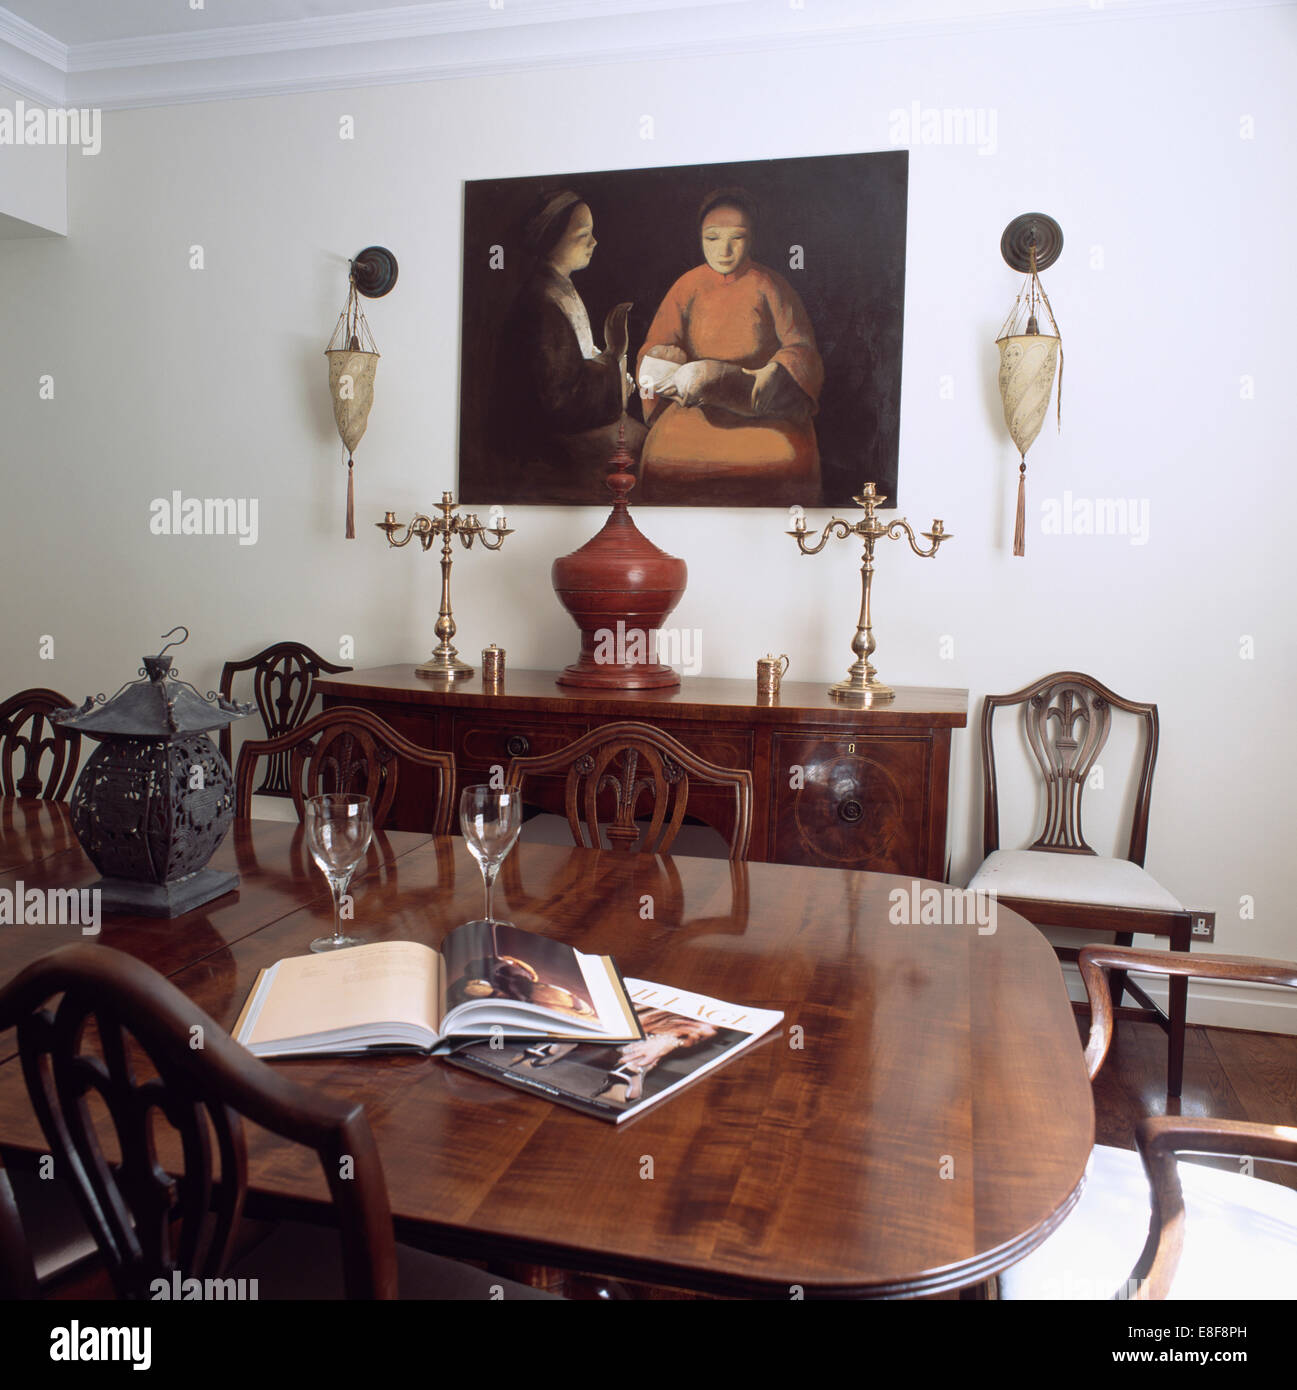 Regency Style Chairs And Table In White Dining Room With Large Picture  Above Sideboard With Brass Candelabra